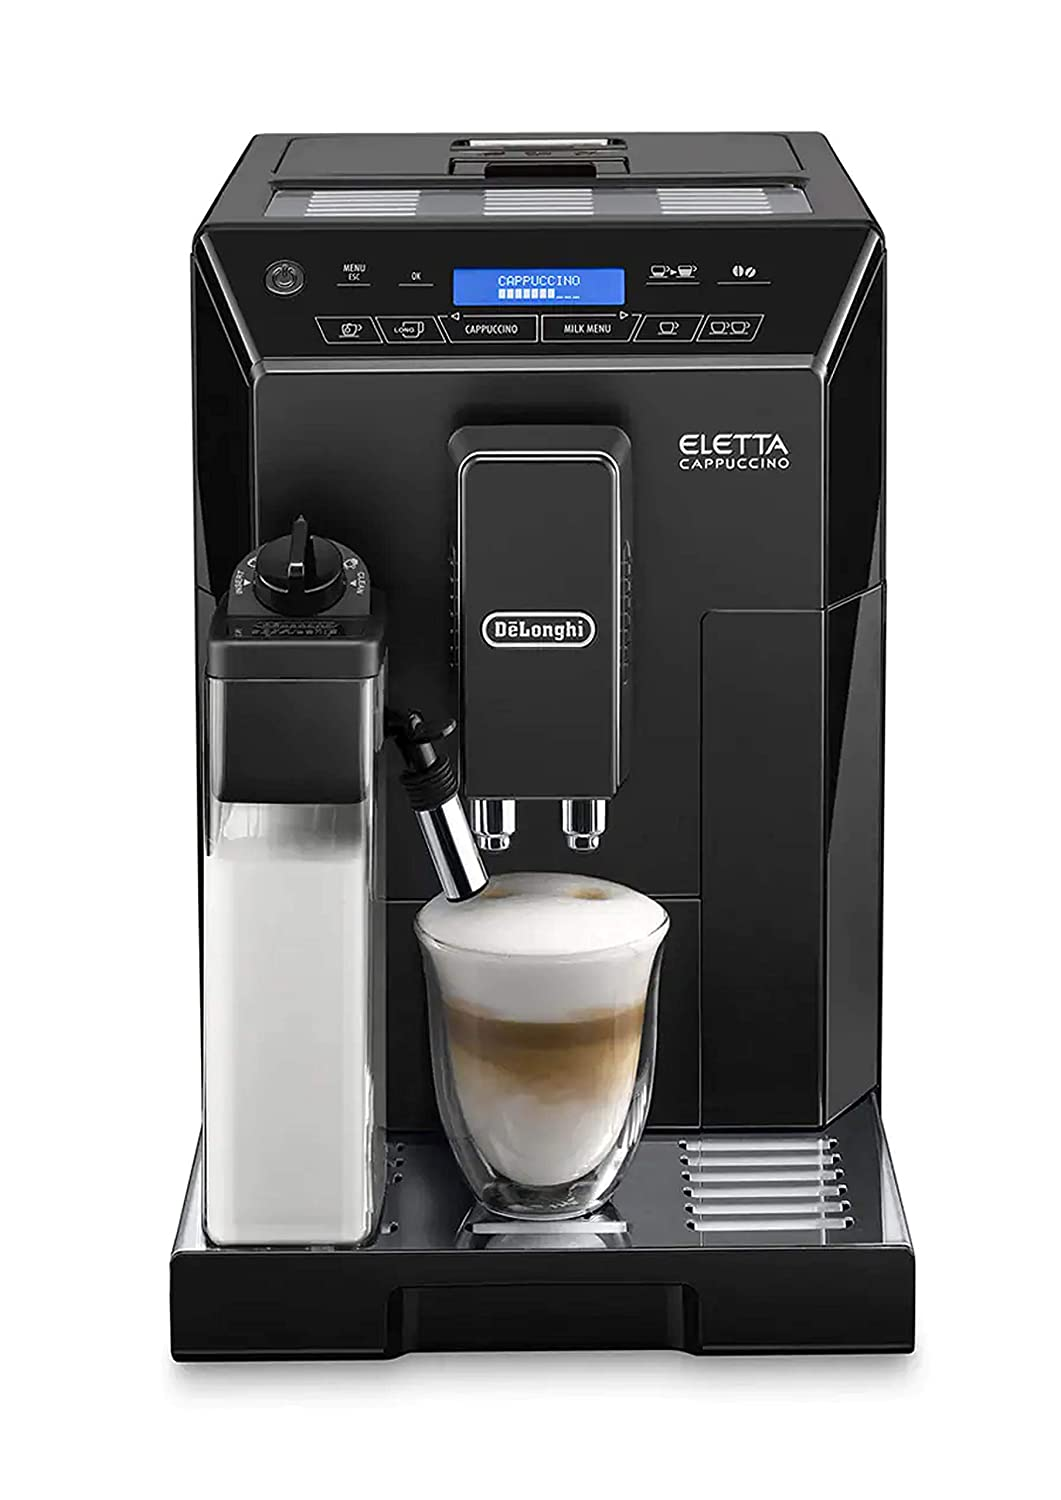 Delonghi super-automatic espresso coffee machine with an adjustable grinder, double boiler, milk frothermaker for brewing espresso, cappuccino, latte, macchiato & Flat white. ECAM44660B Eletta